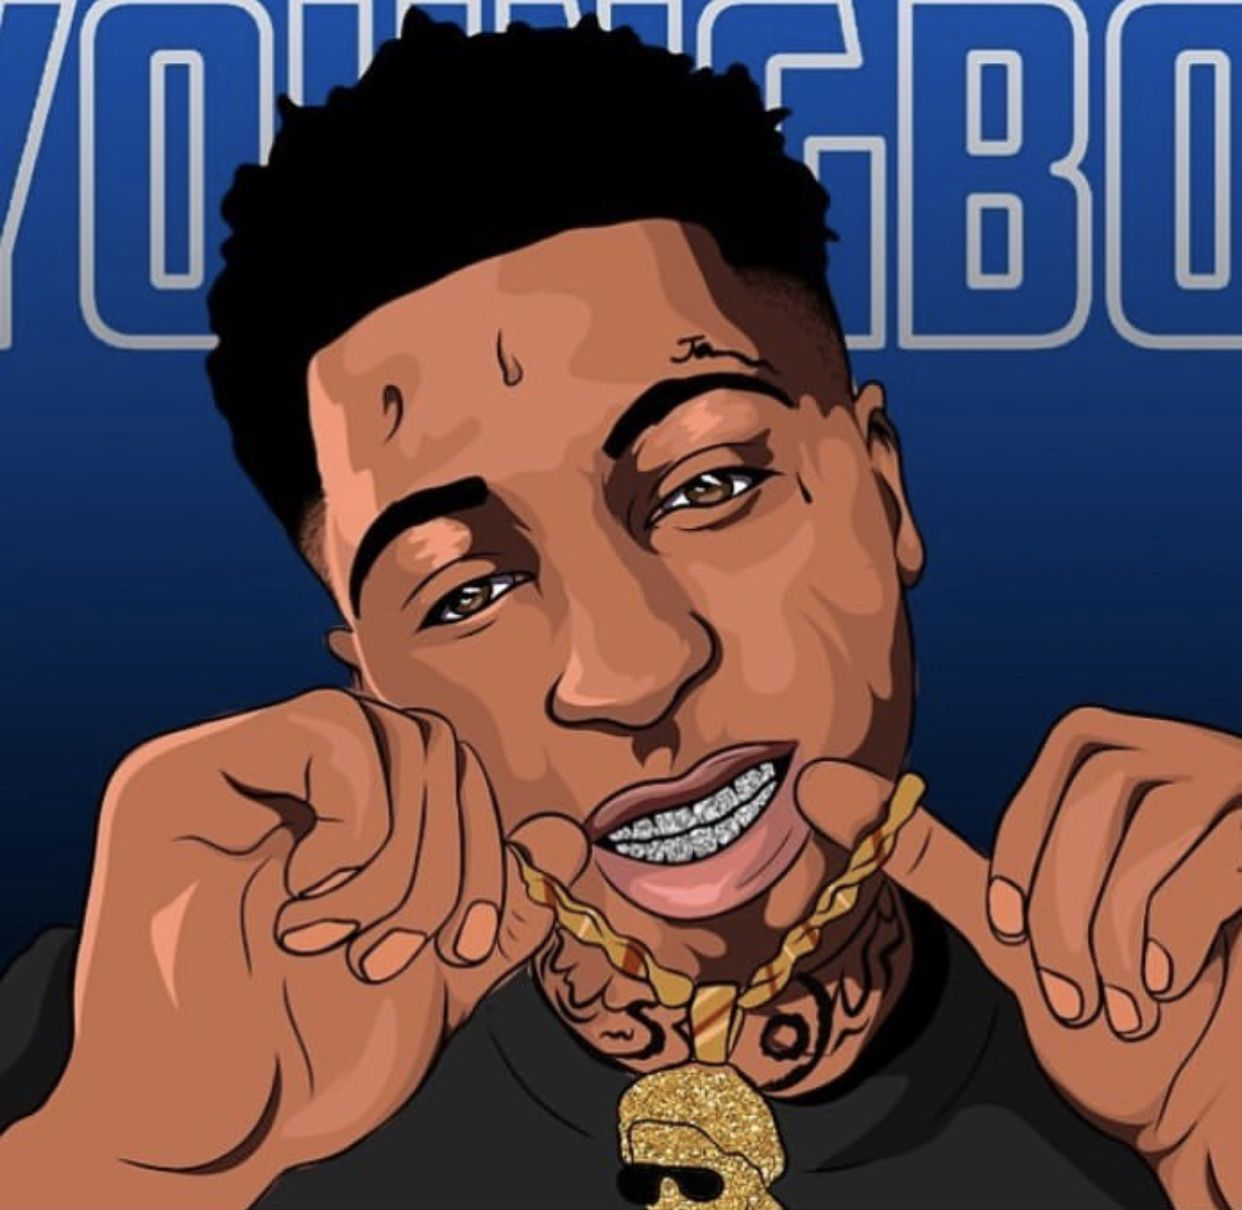 Blueface Baby Cartoon Wallpapers Top Free Blueface Baby Cartoon Backgrounds Wallpaperaccess